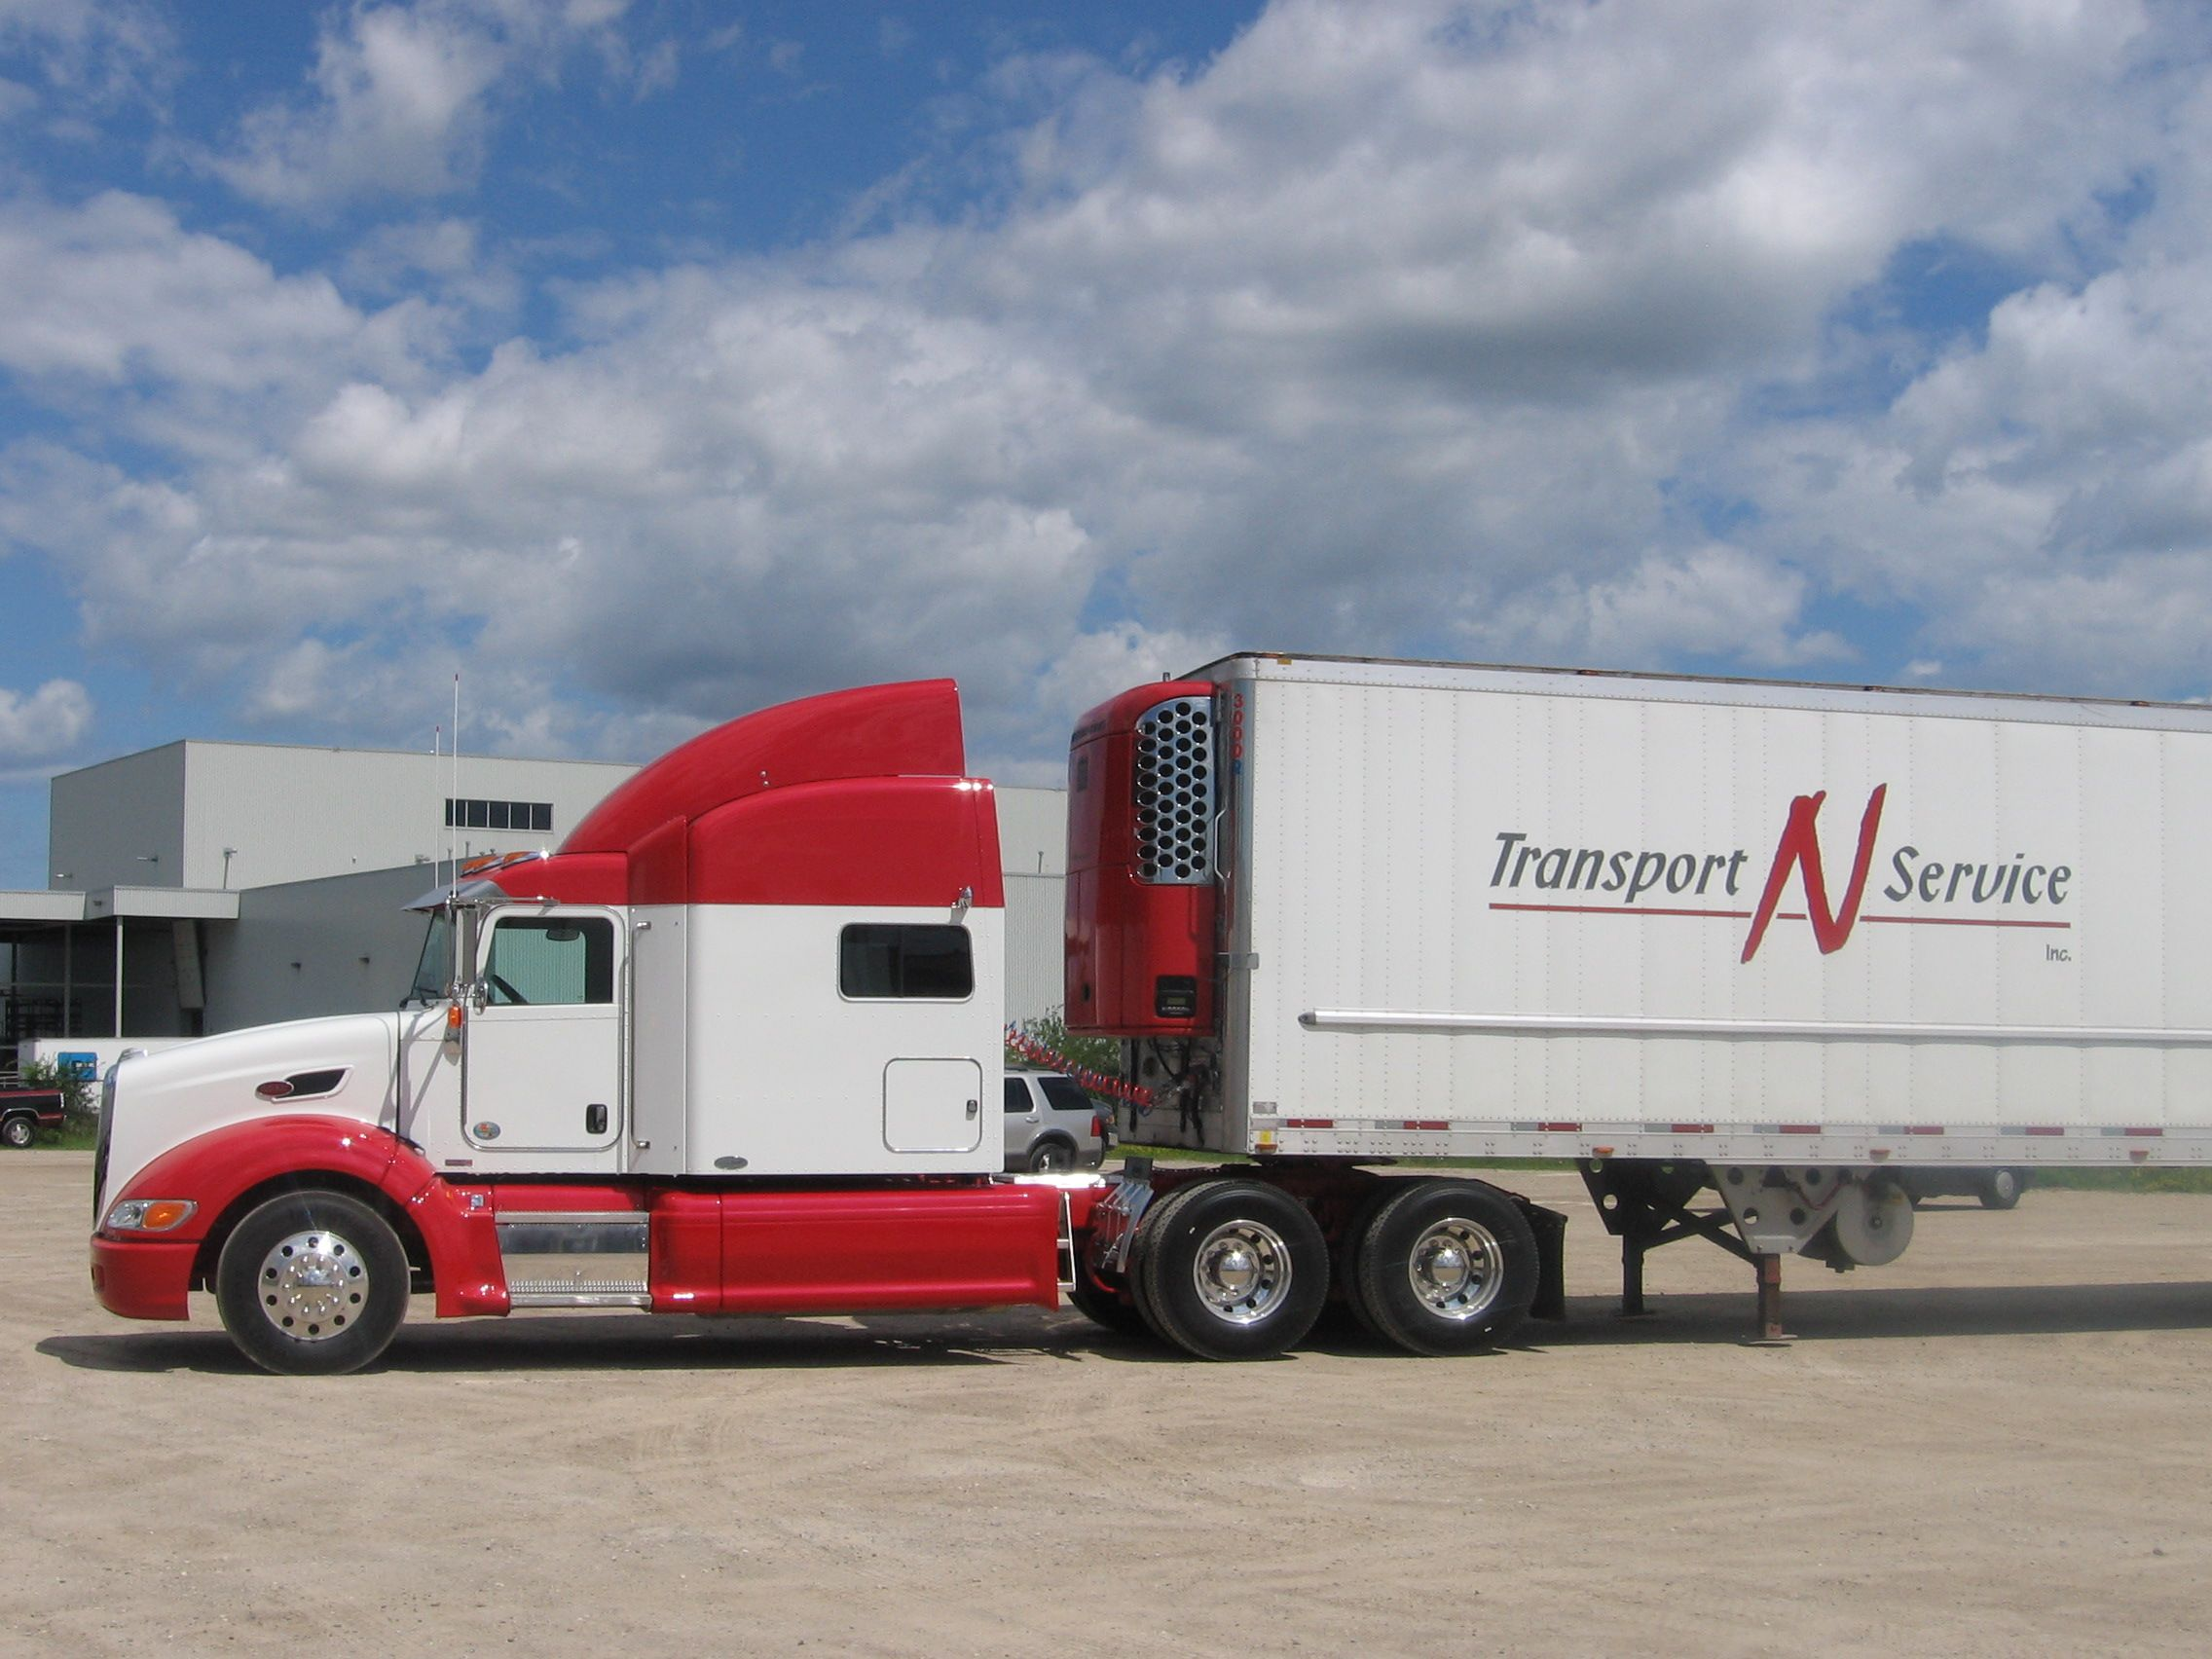 Pulling Up In Our Red And White Uniform Transportnservice Imaginerealservice Trucks Truck Driver Rental Company